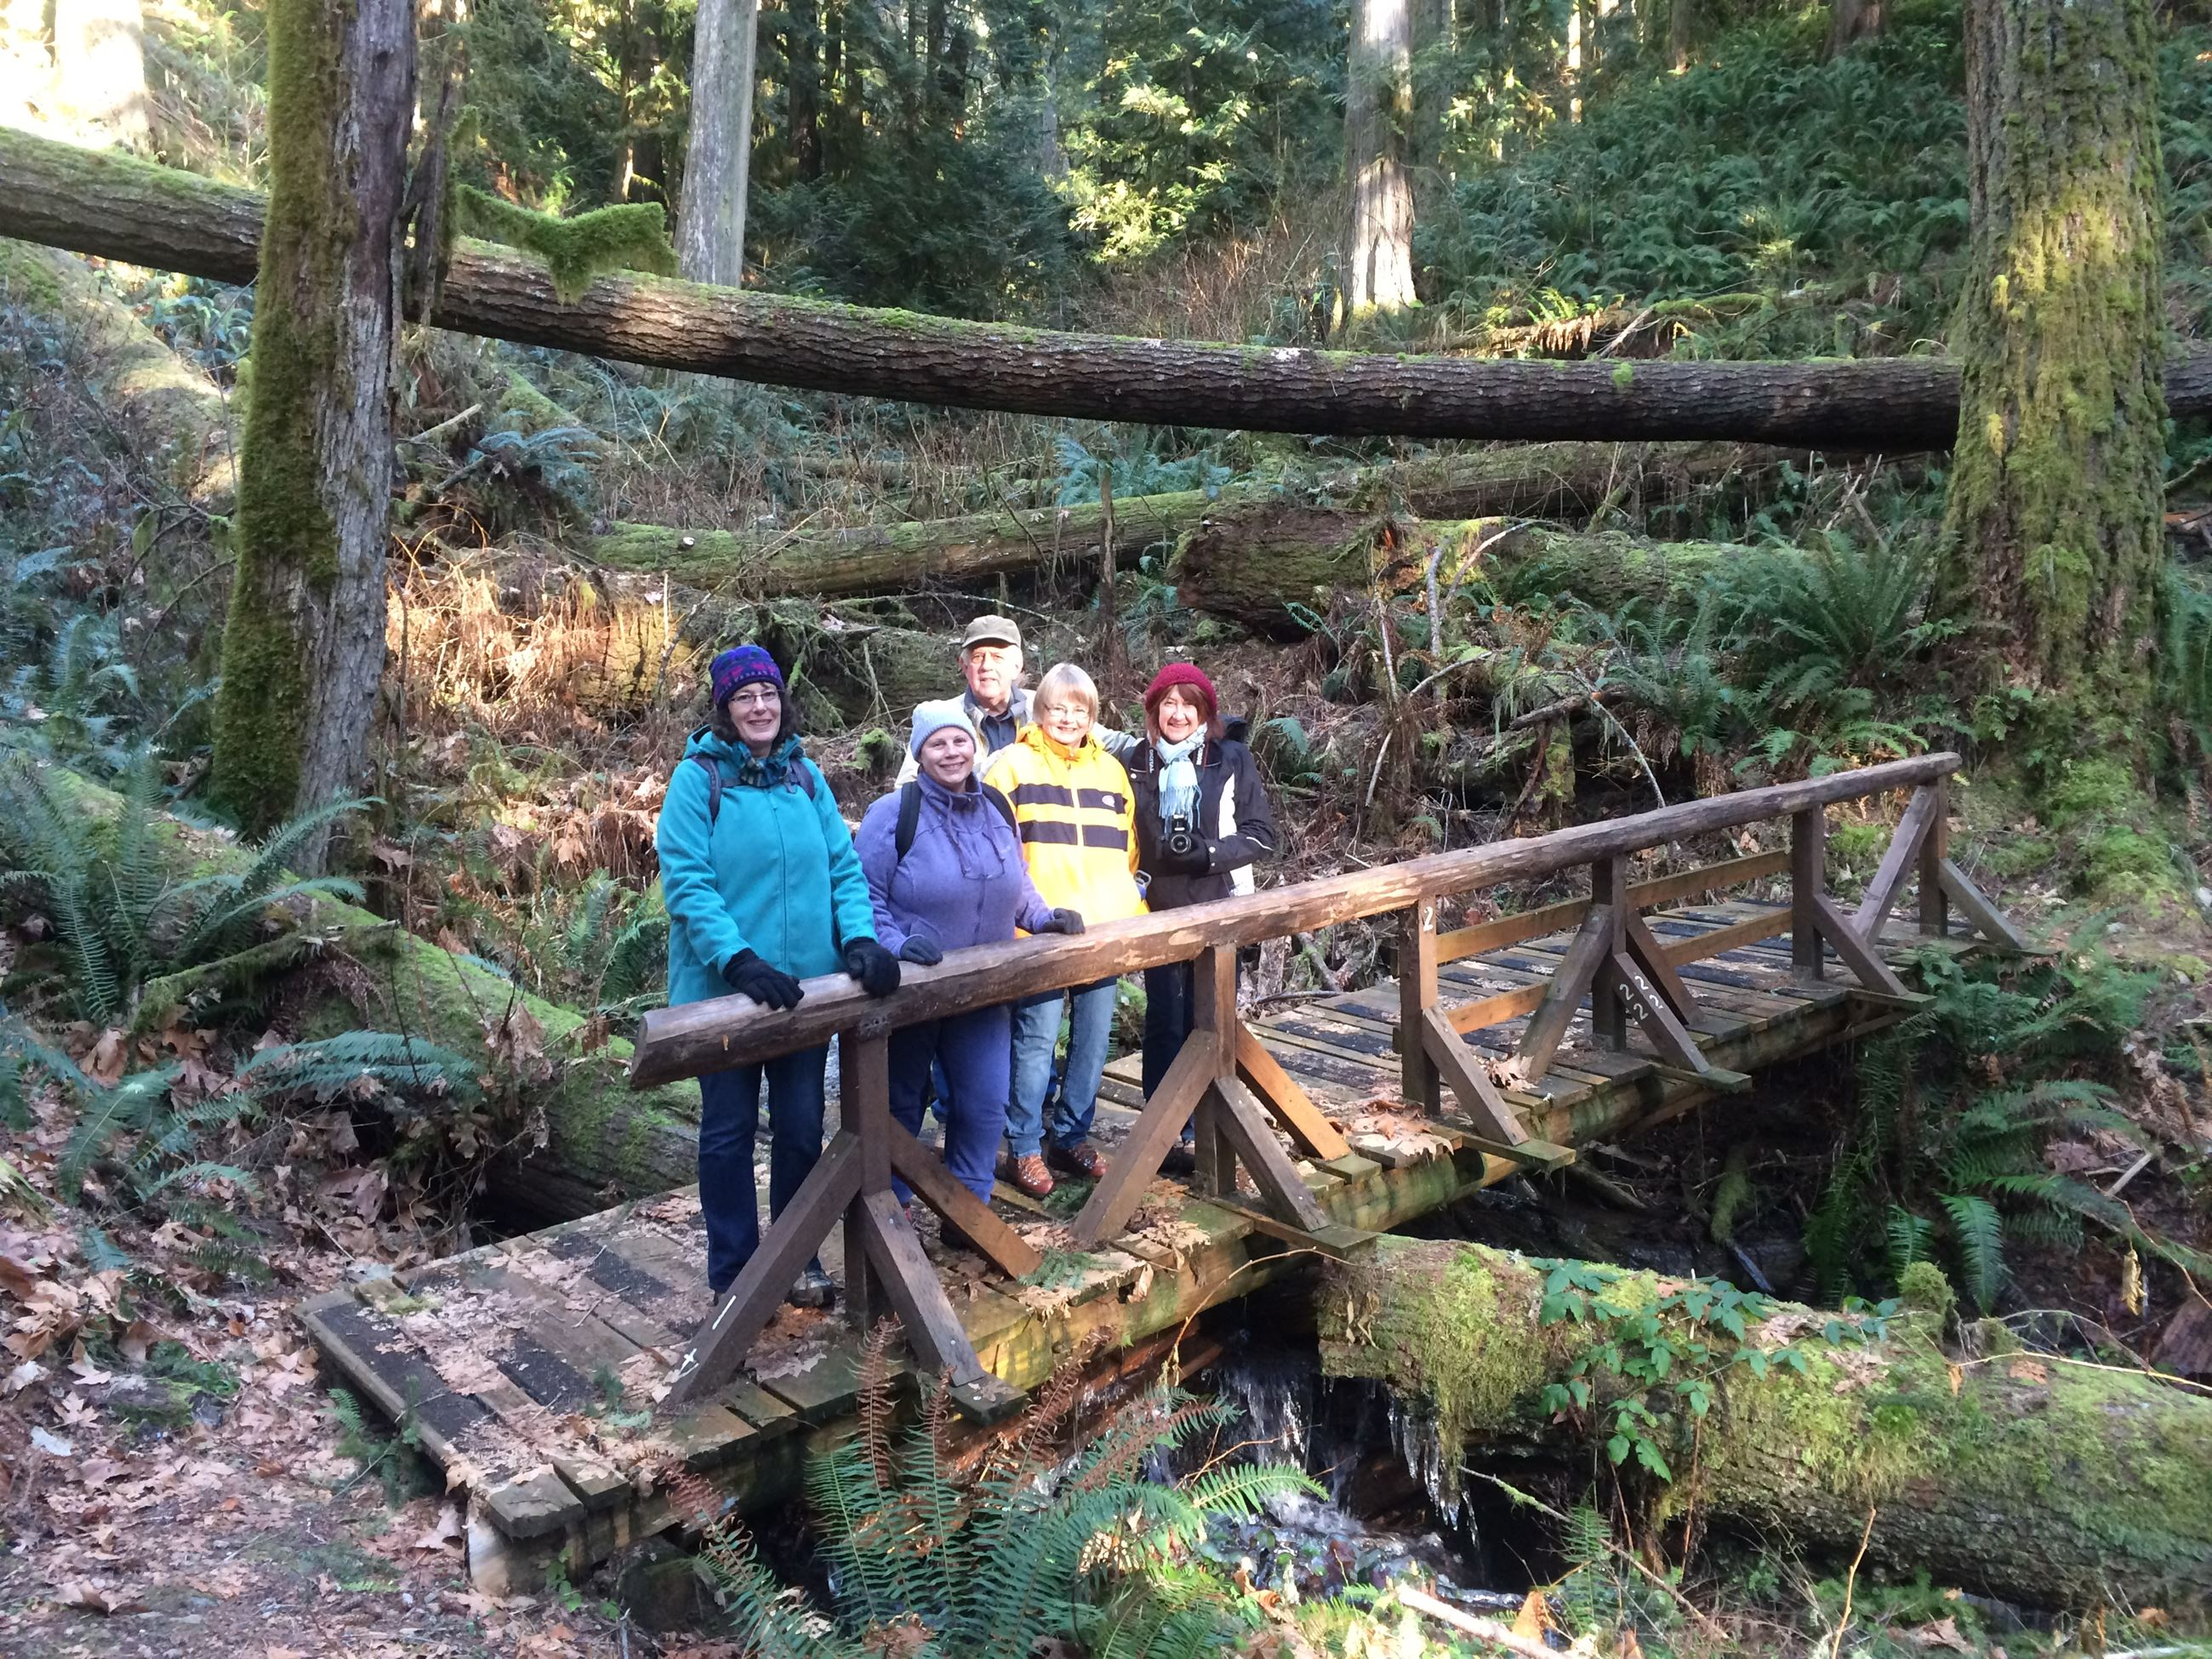 Rockport Hikers on a Bridge